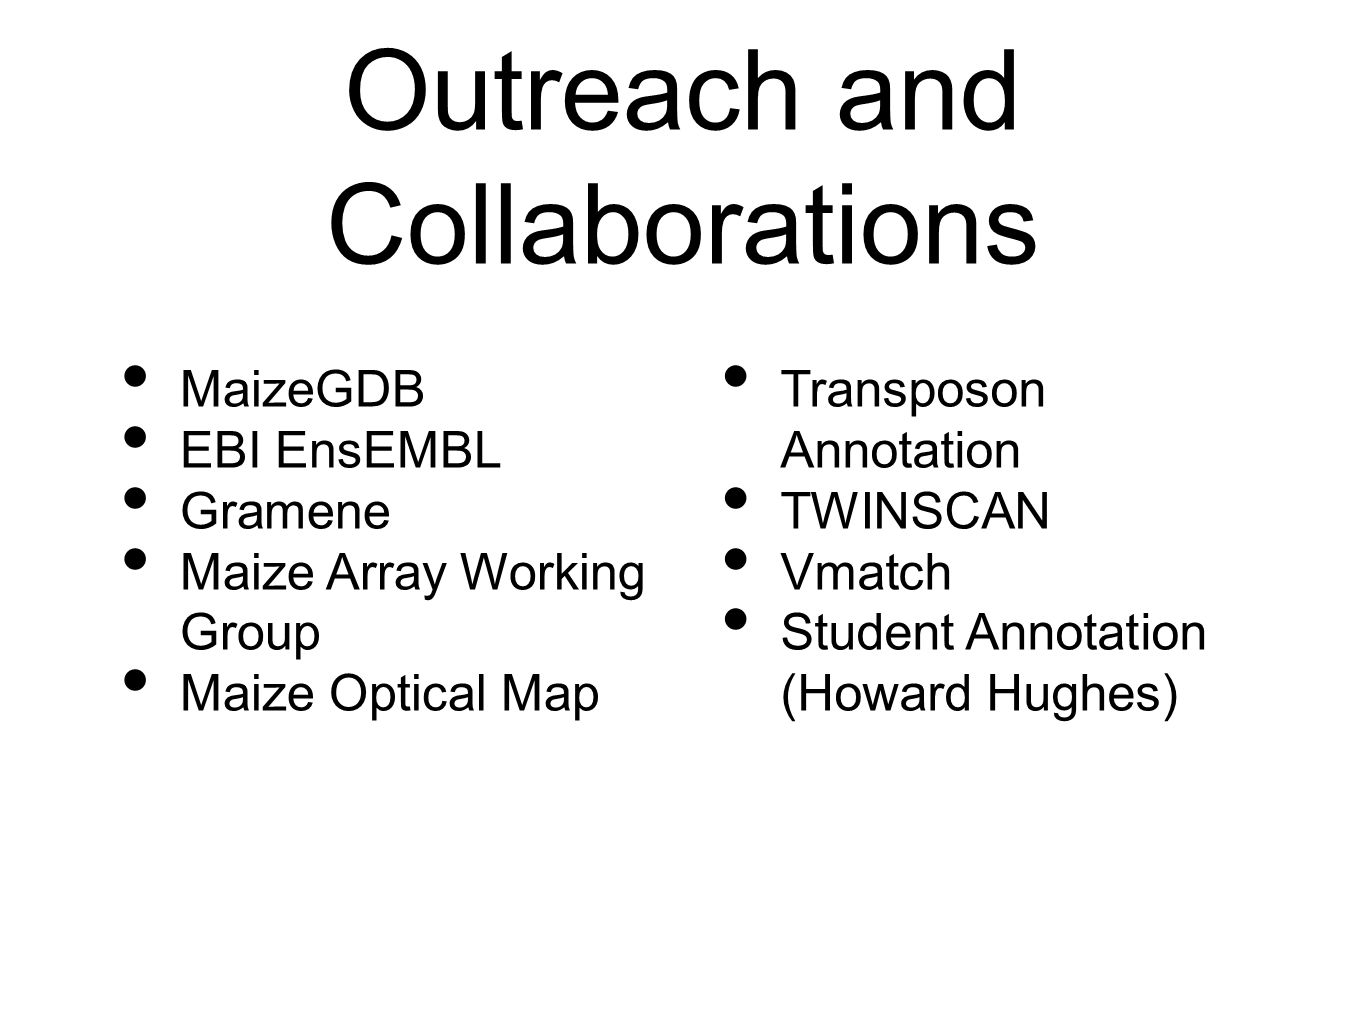 Outreach and Collaborations MaizeGDB EBI EnsEMBL Gramene Maize Array Working Group Maize Optical Map Transposon Annotation TWINSCAN Vmatch Student Annotation (Howard Hughes)